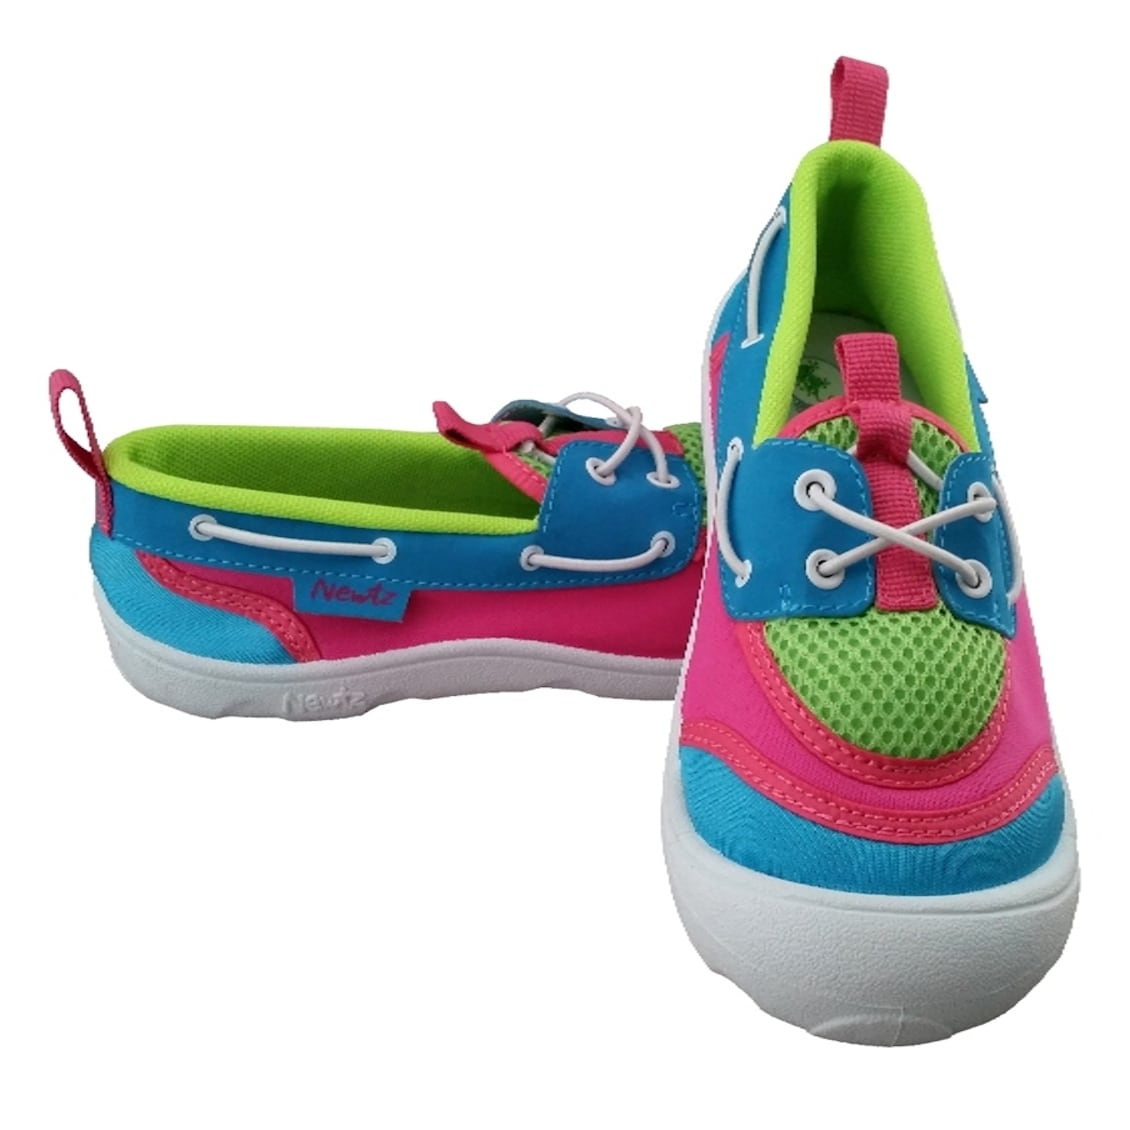 42eb37025c74 Shop Girls  Aqua   Lime  Pink Sider Water Shoes - Free Shipping On Orders  Over  45 - Overstock - 10363706